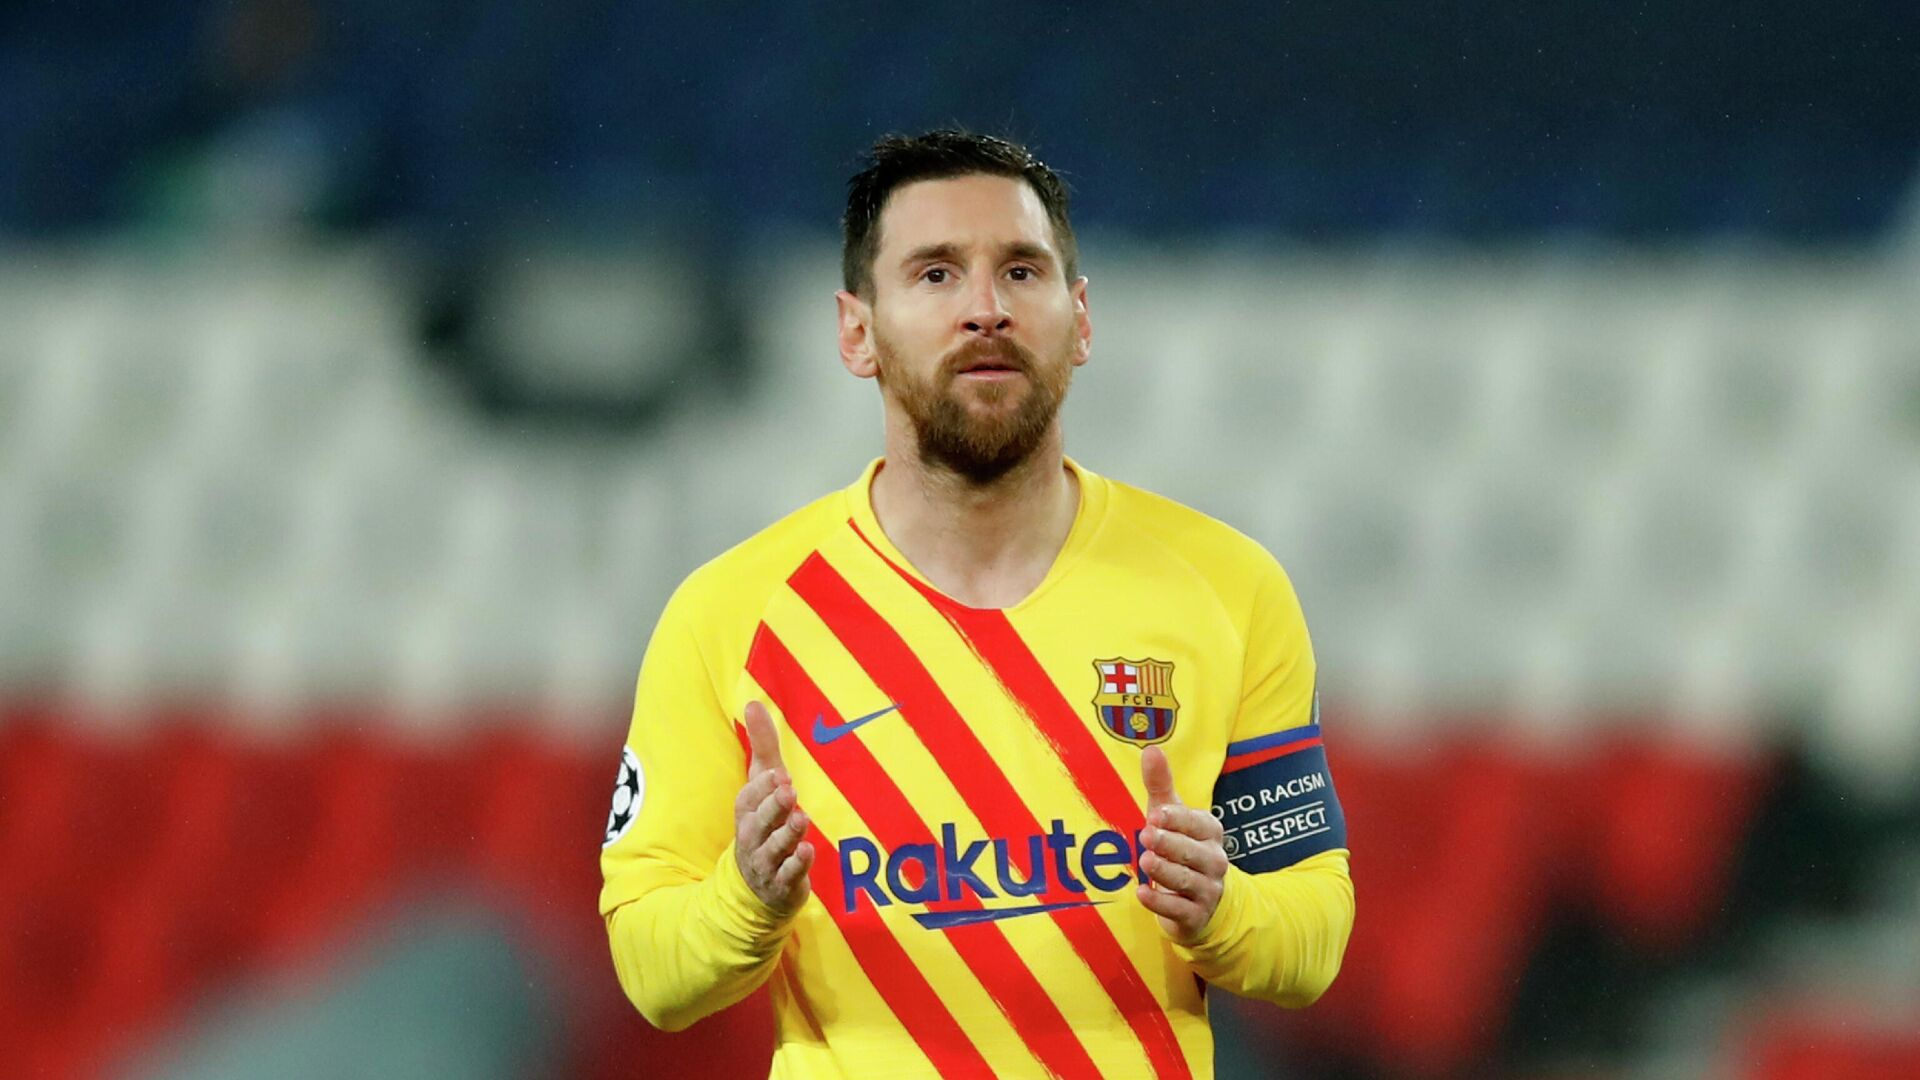 Lionel Messi bei Champions League - SNA, 1920, 03.09.2021